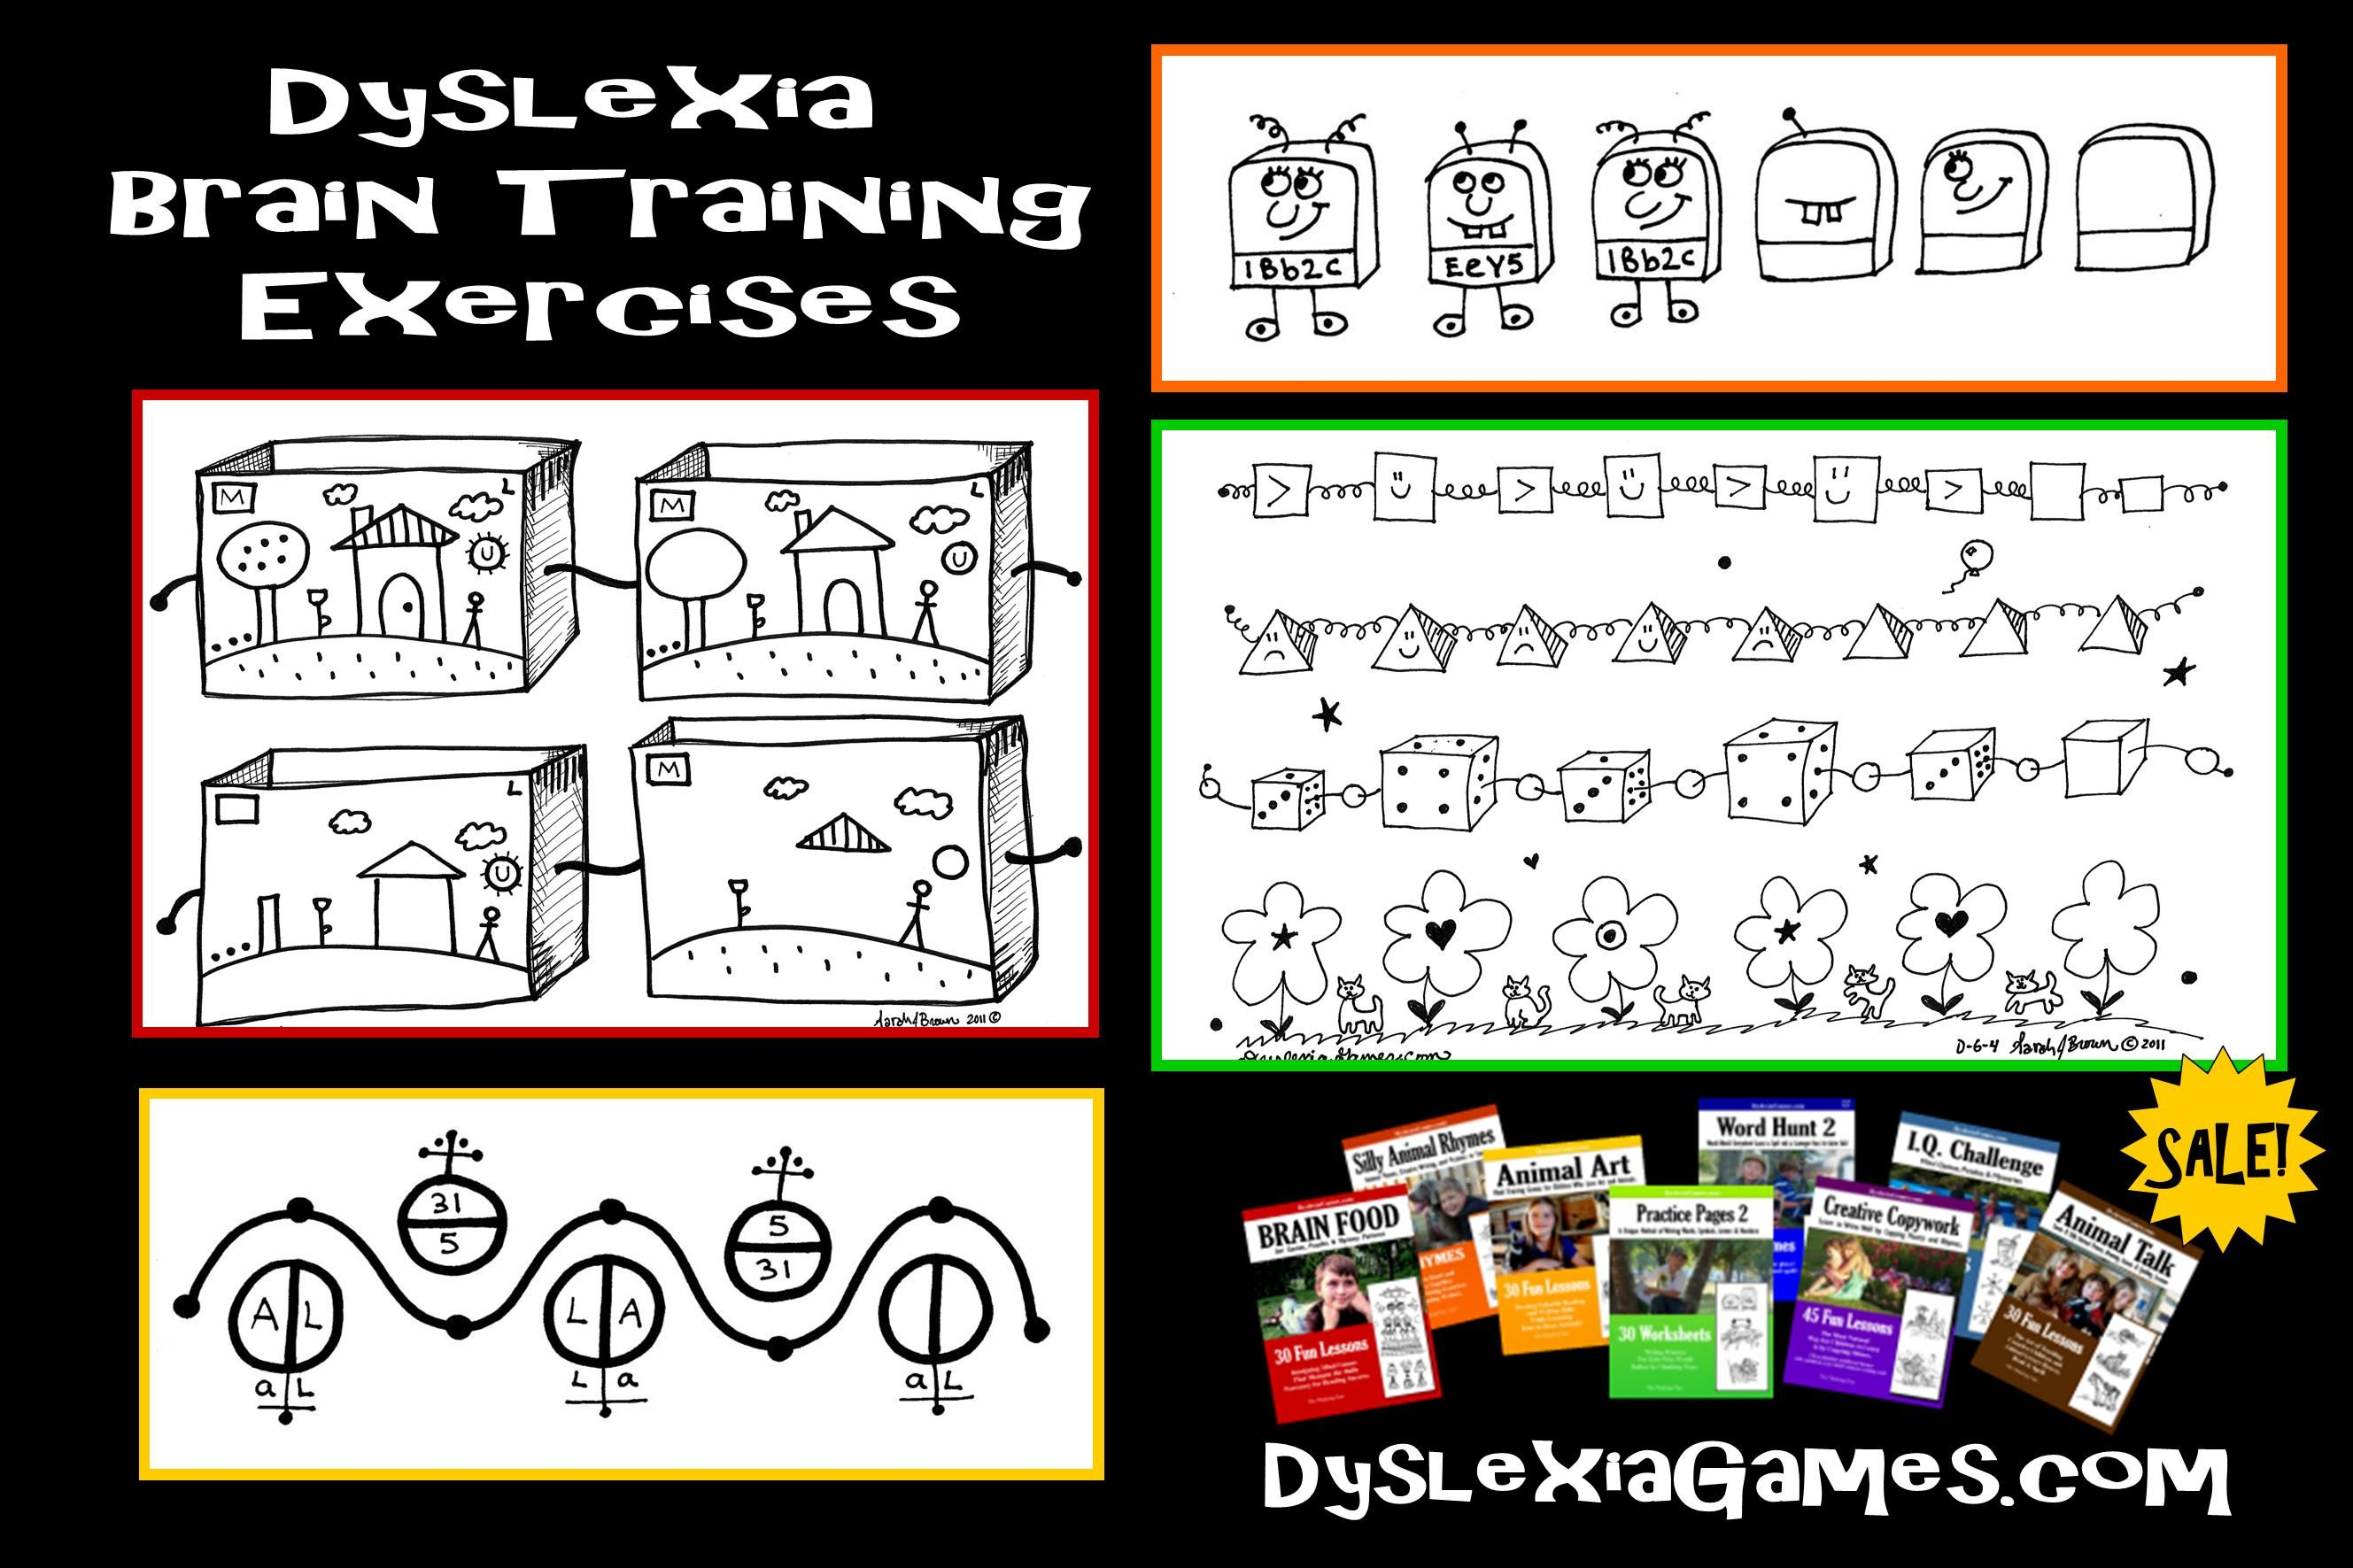 Dyslexia Try Our Brain Training Exercises Games And Fun Activities To Overcome Problems With